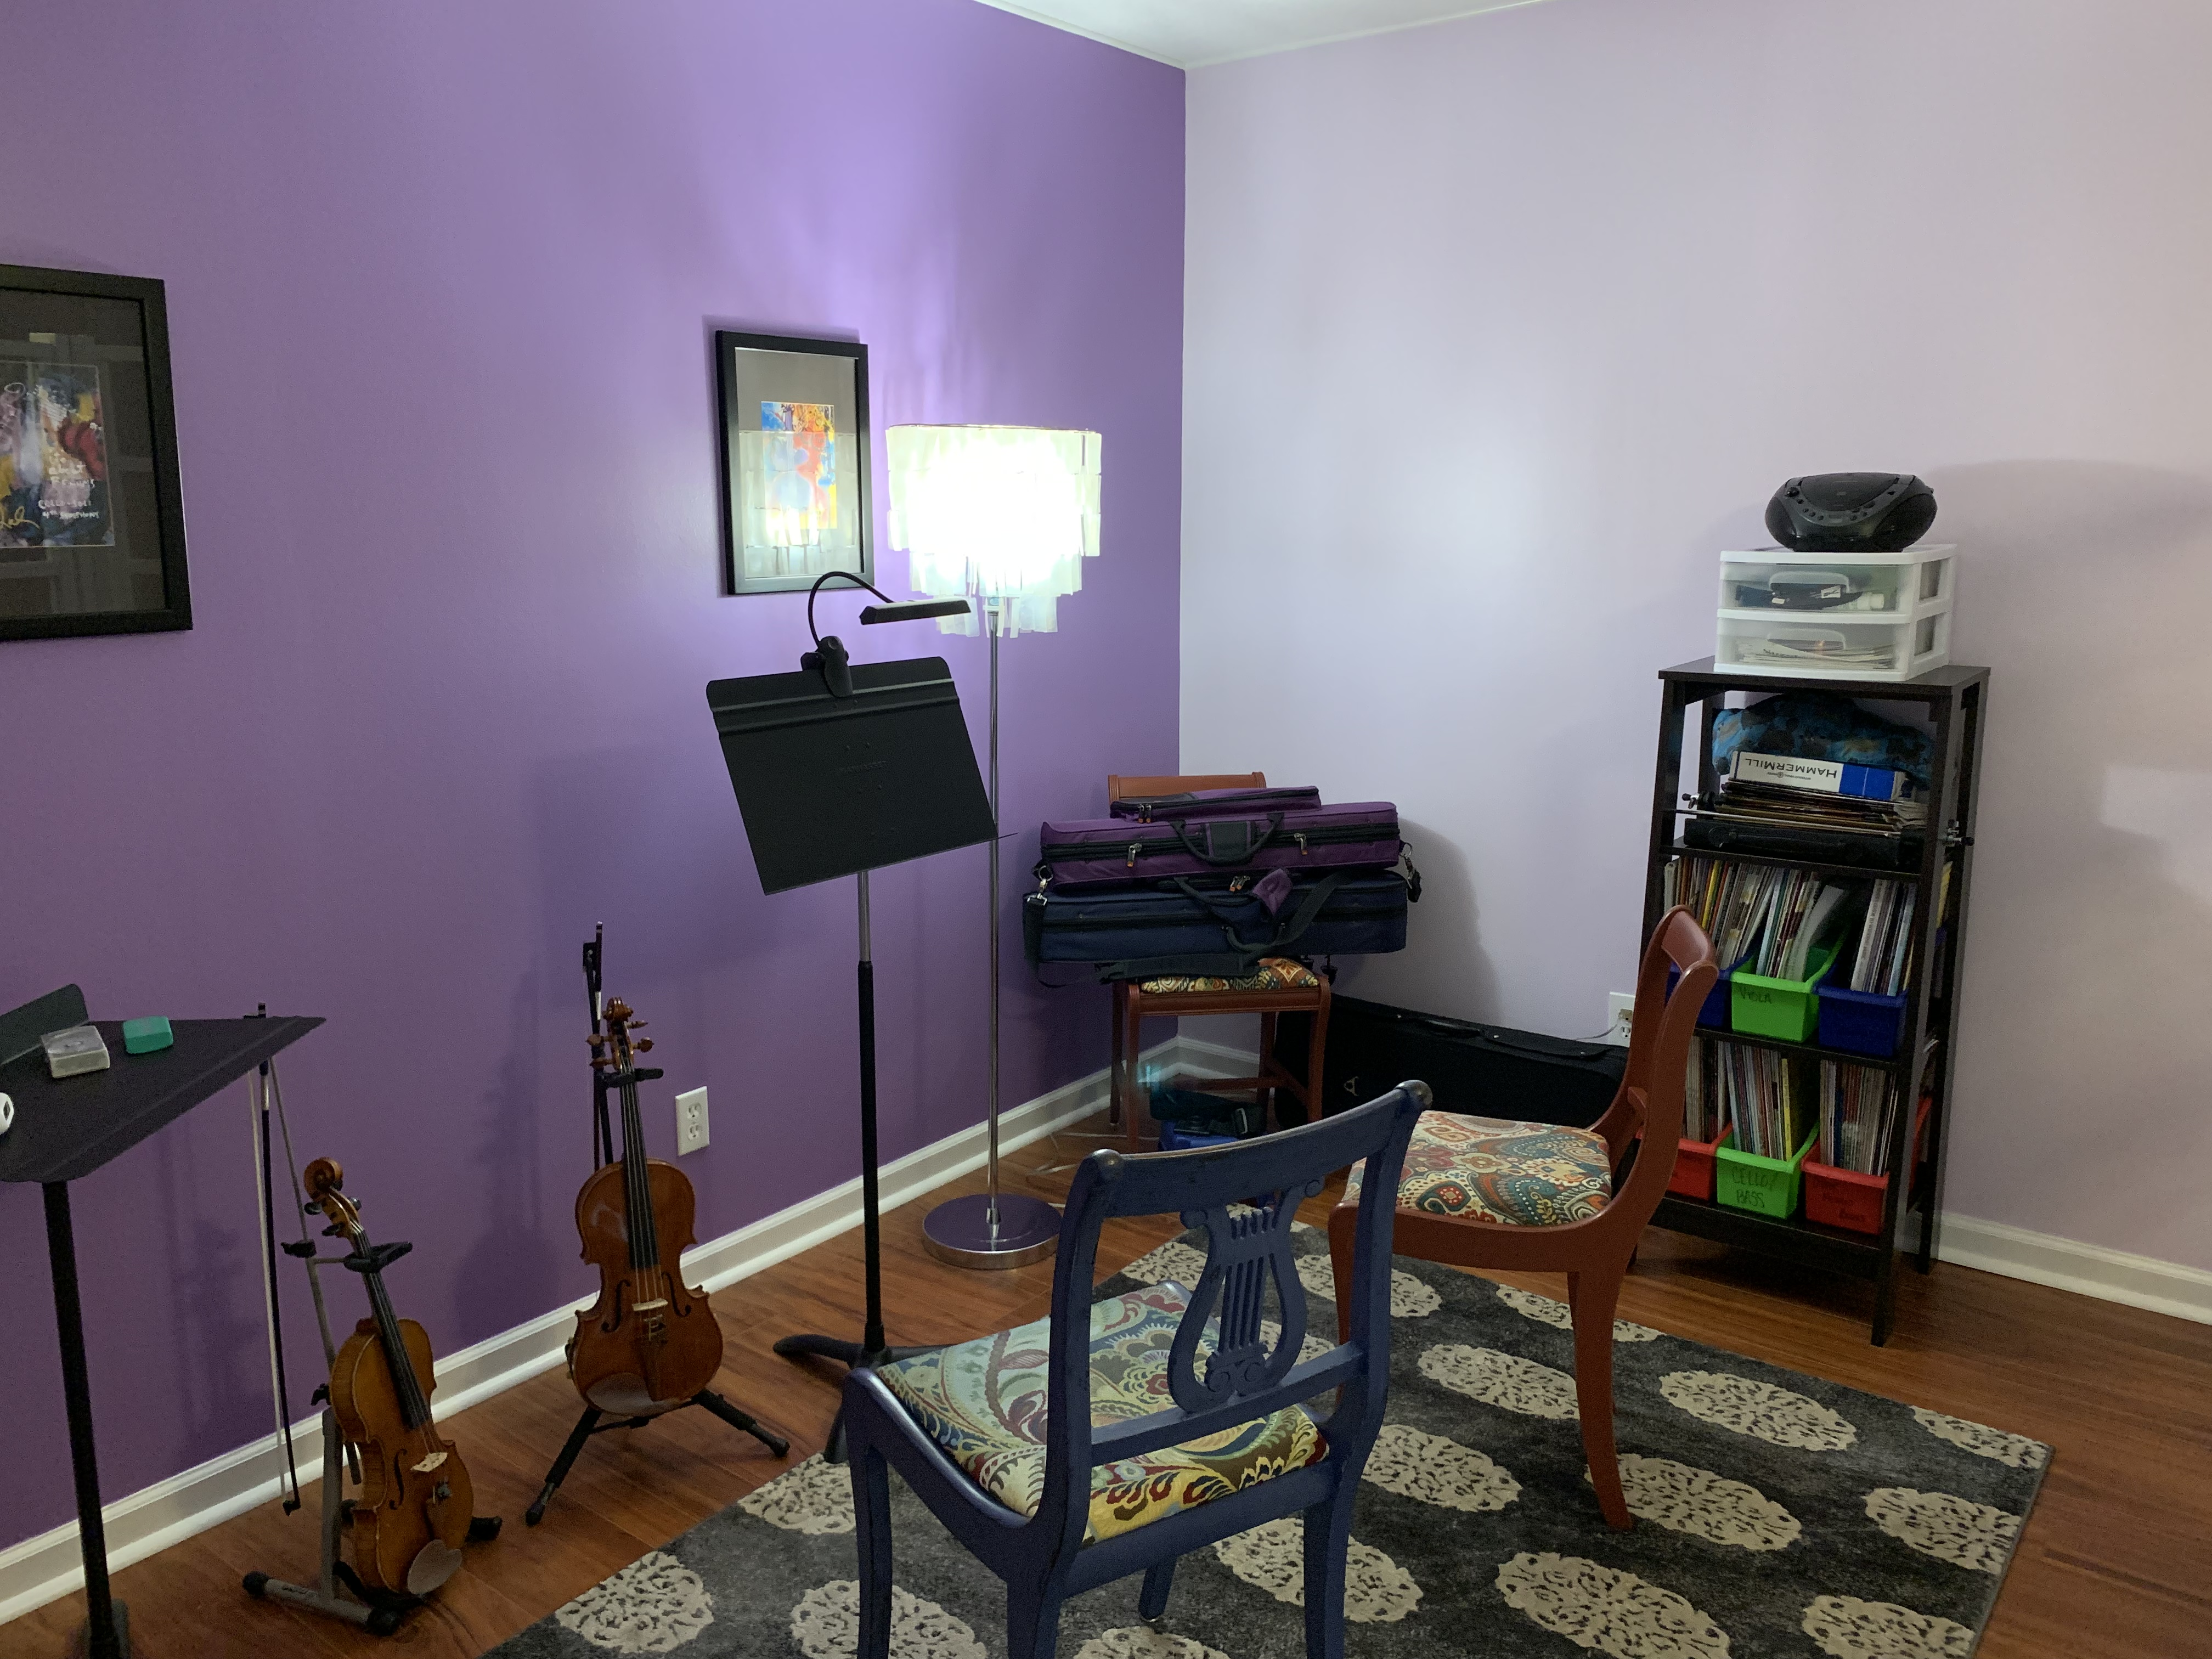 St Charles Music Room After 2